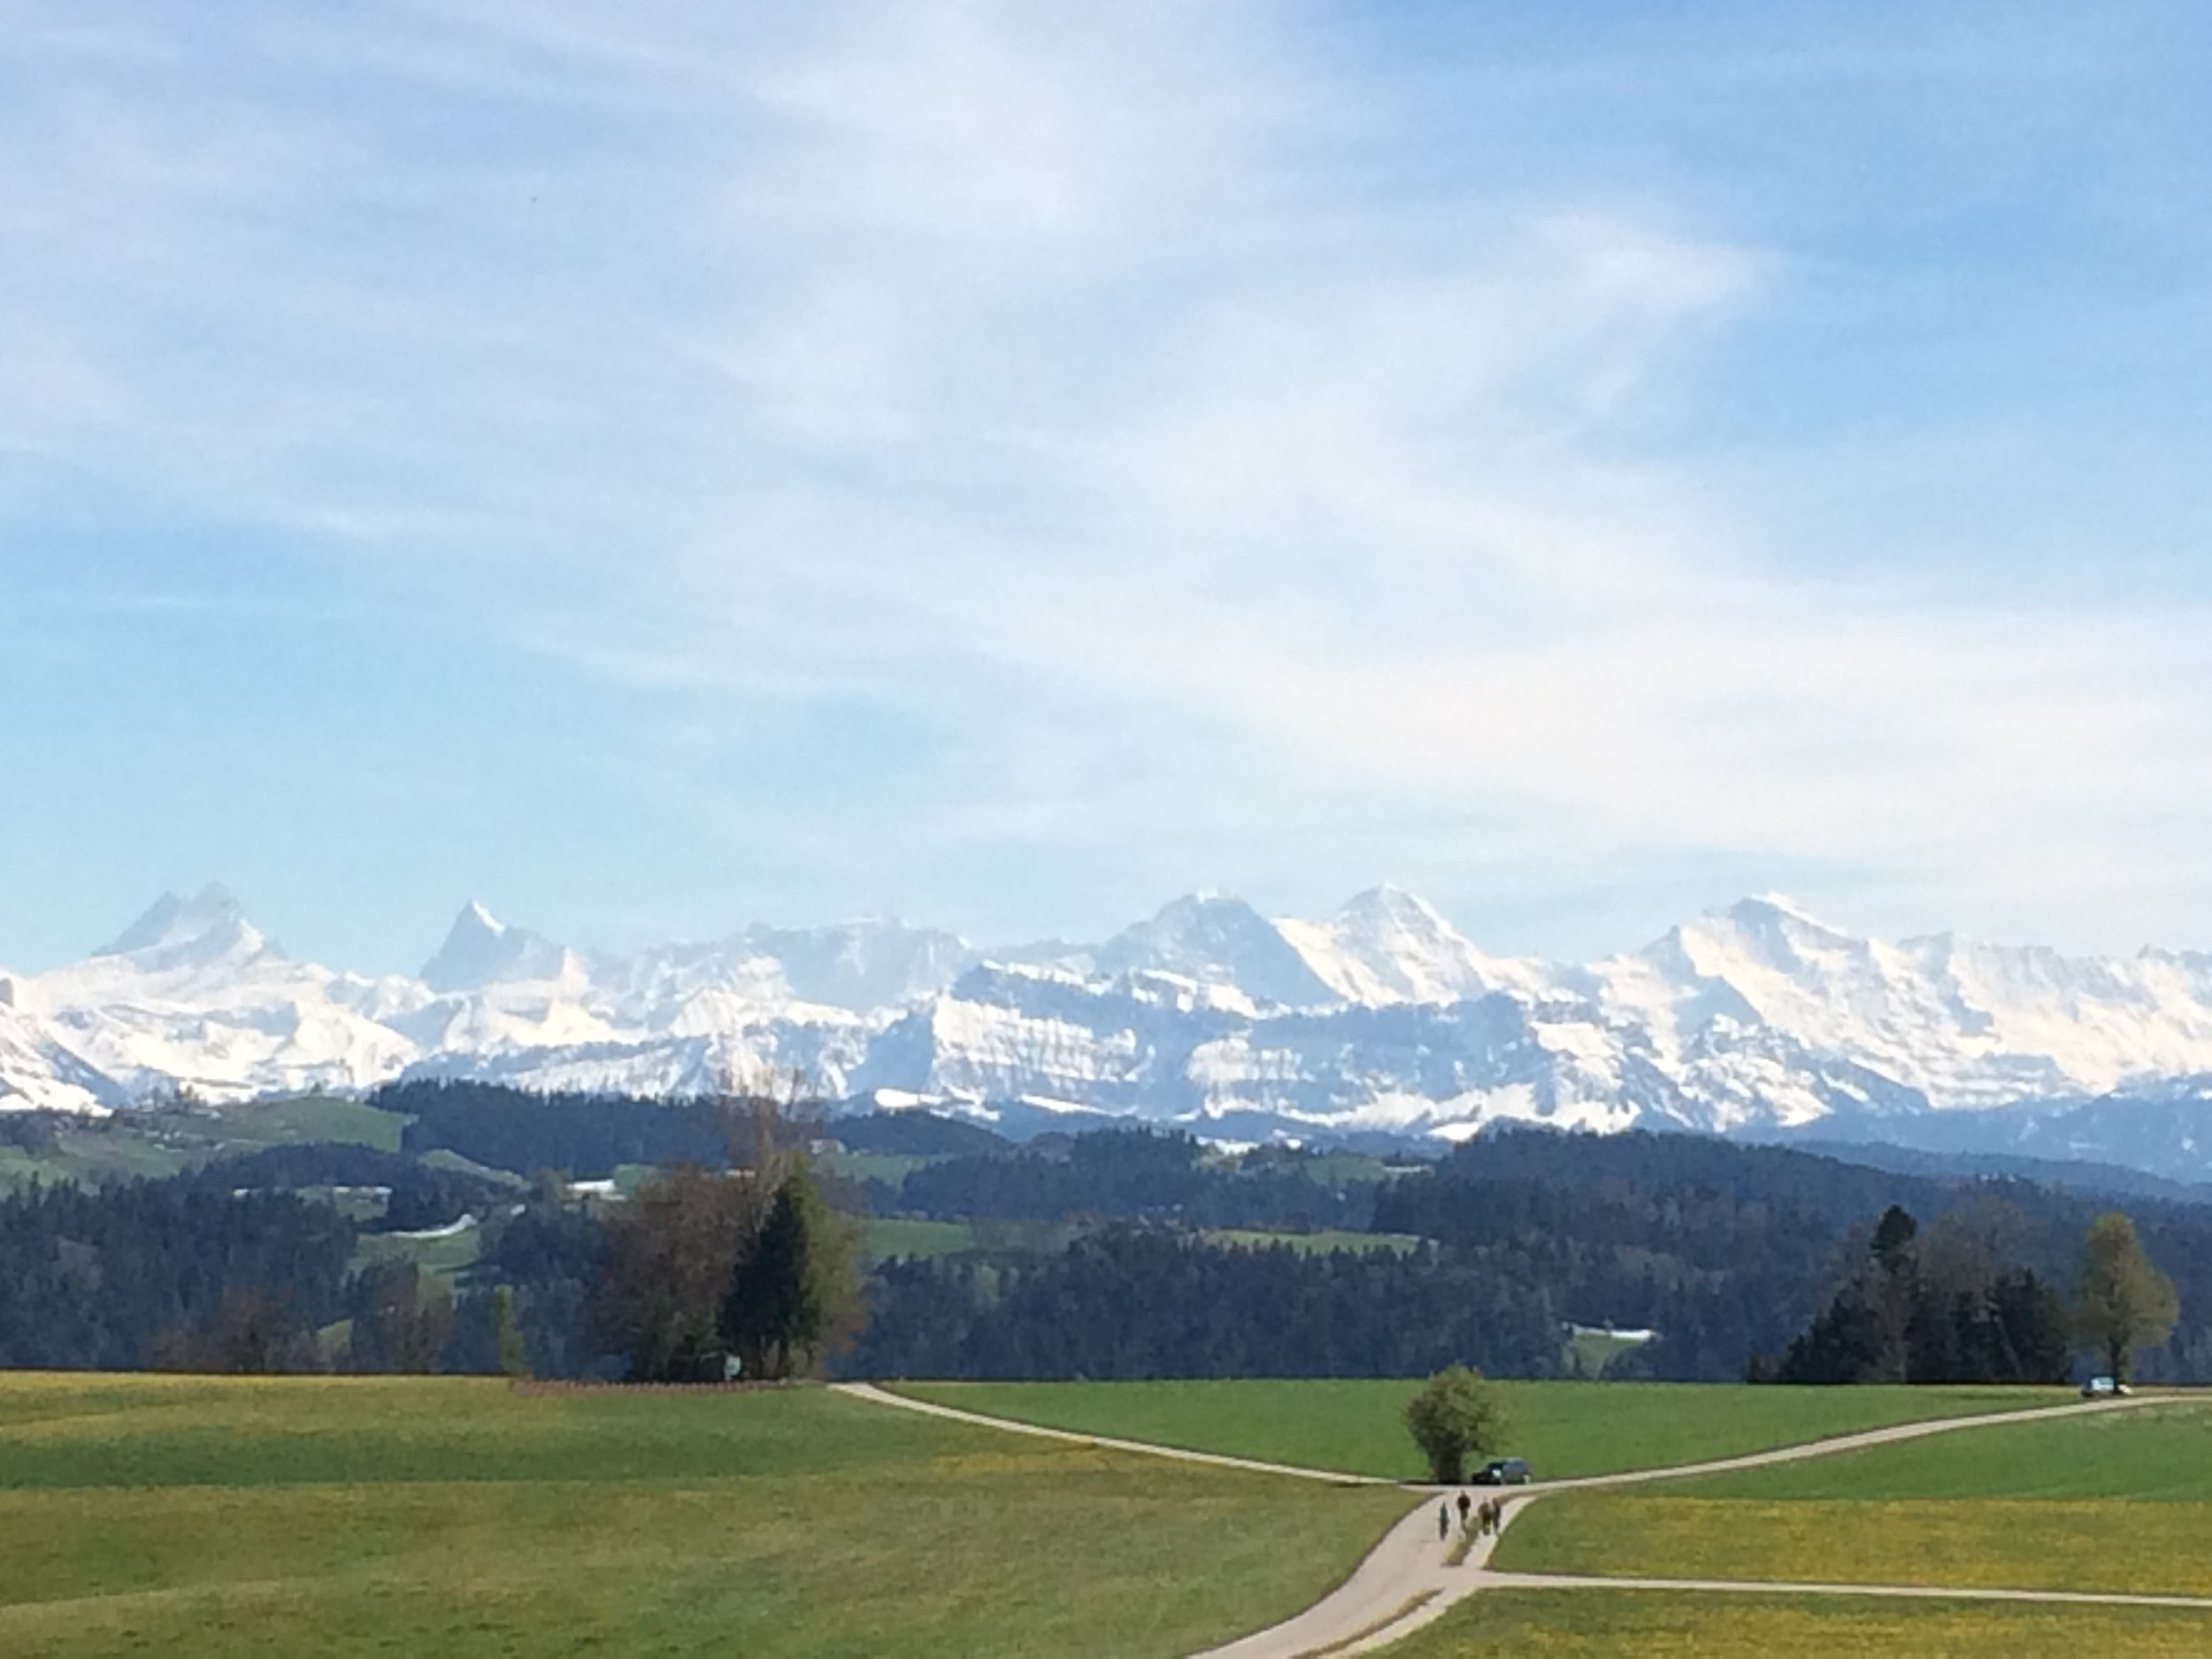 The Jura alps, in the background of Madiswil. The most Idyllic place we've seen anywhere in the world.